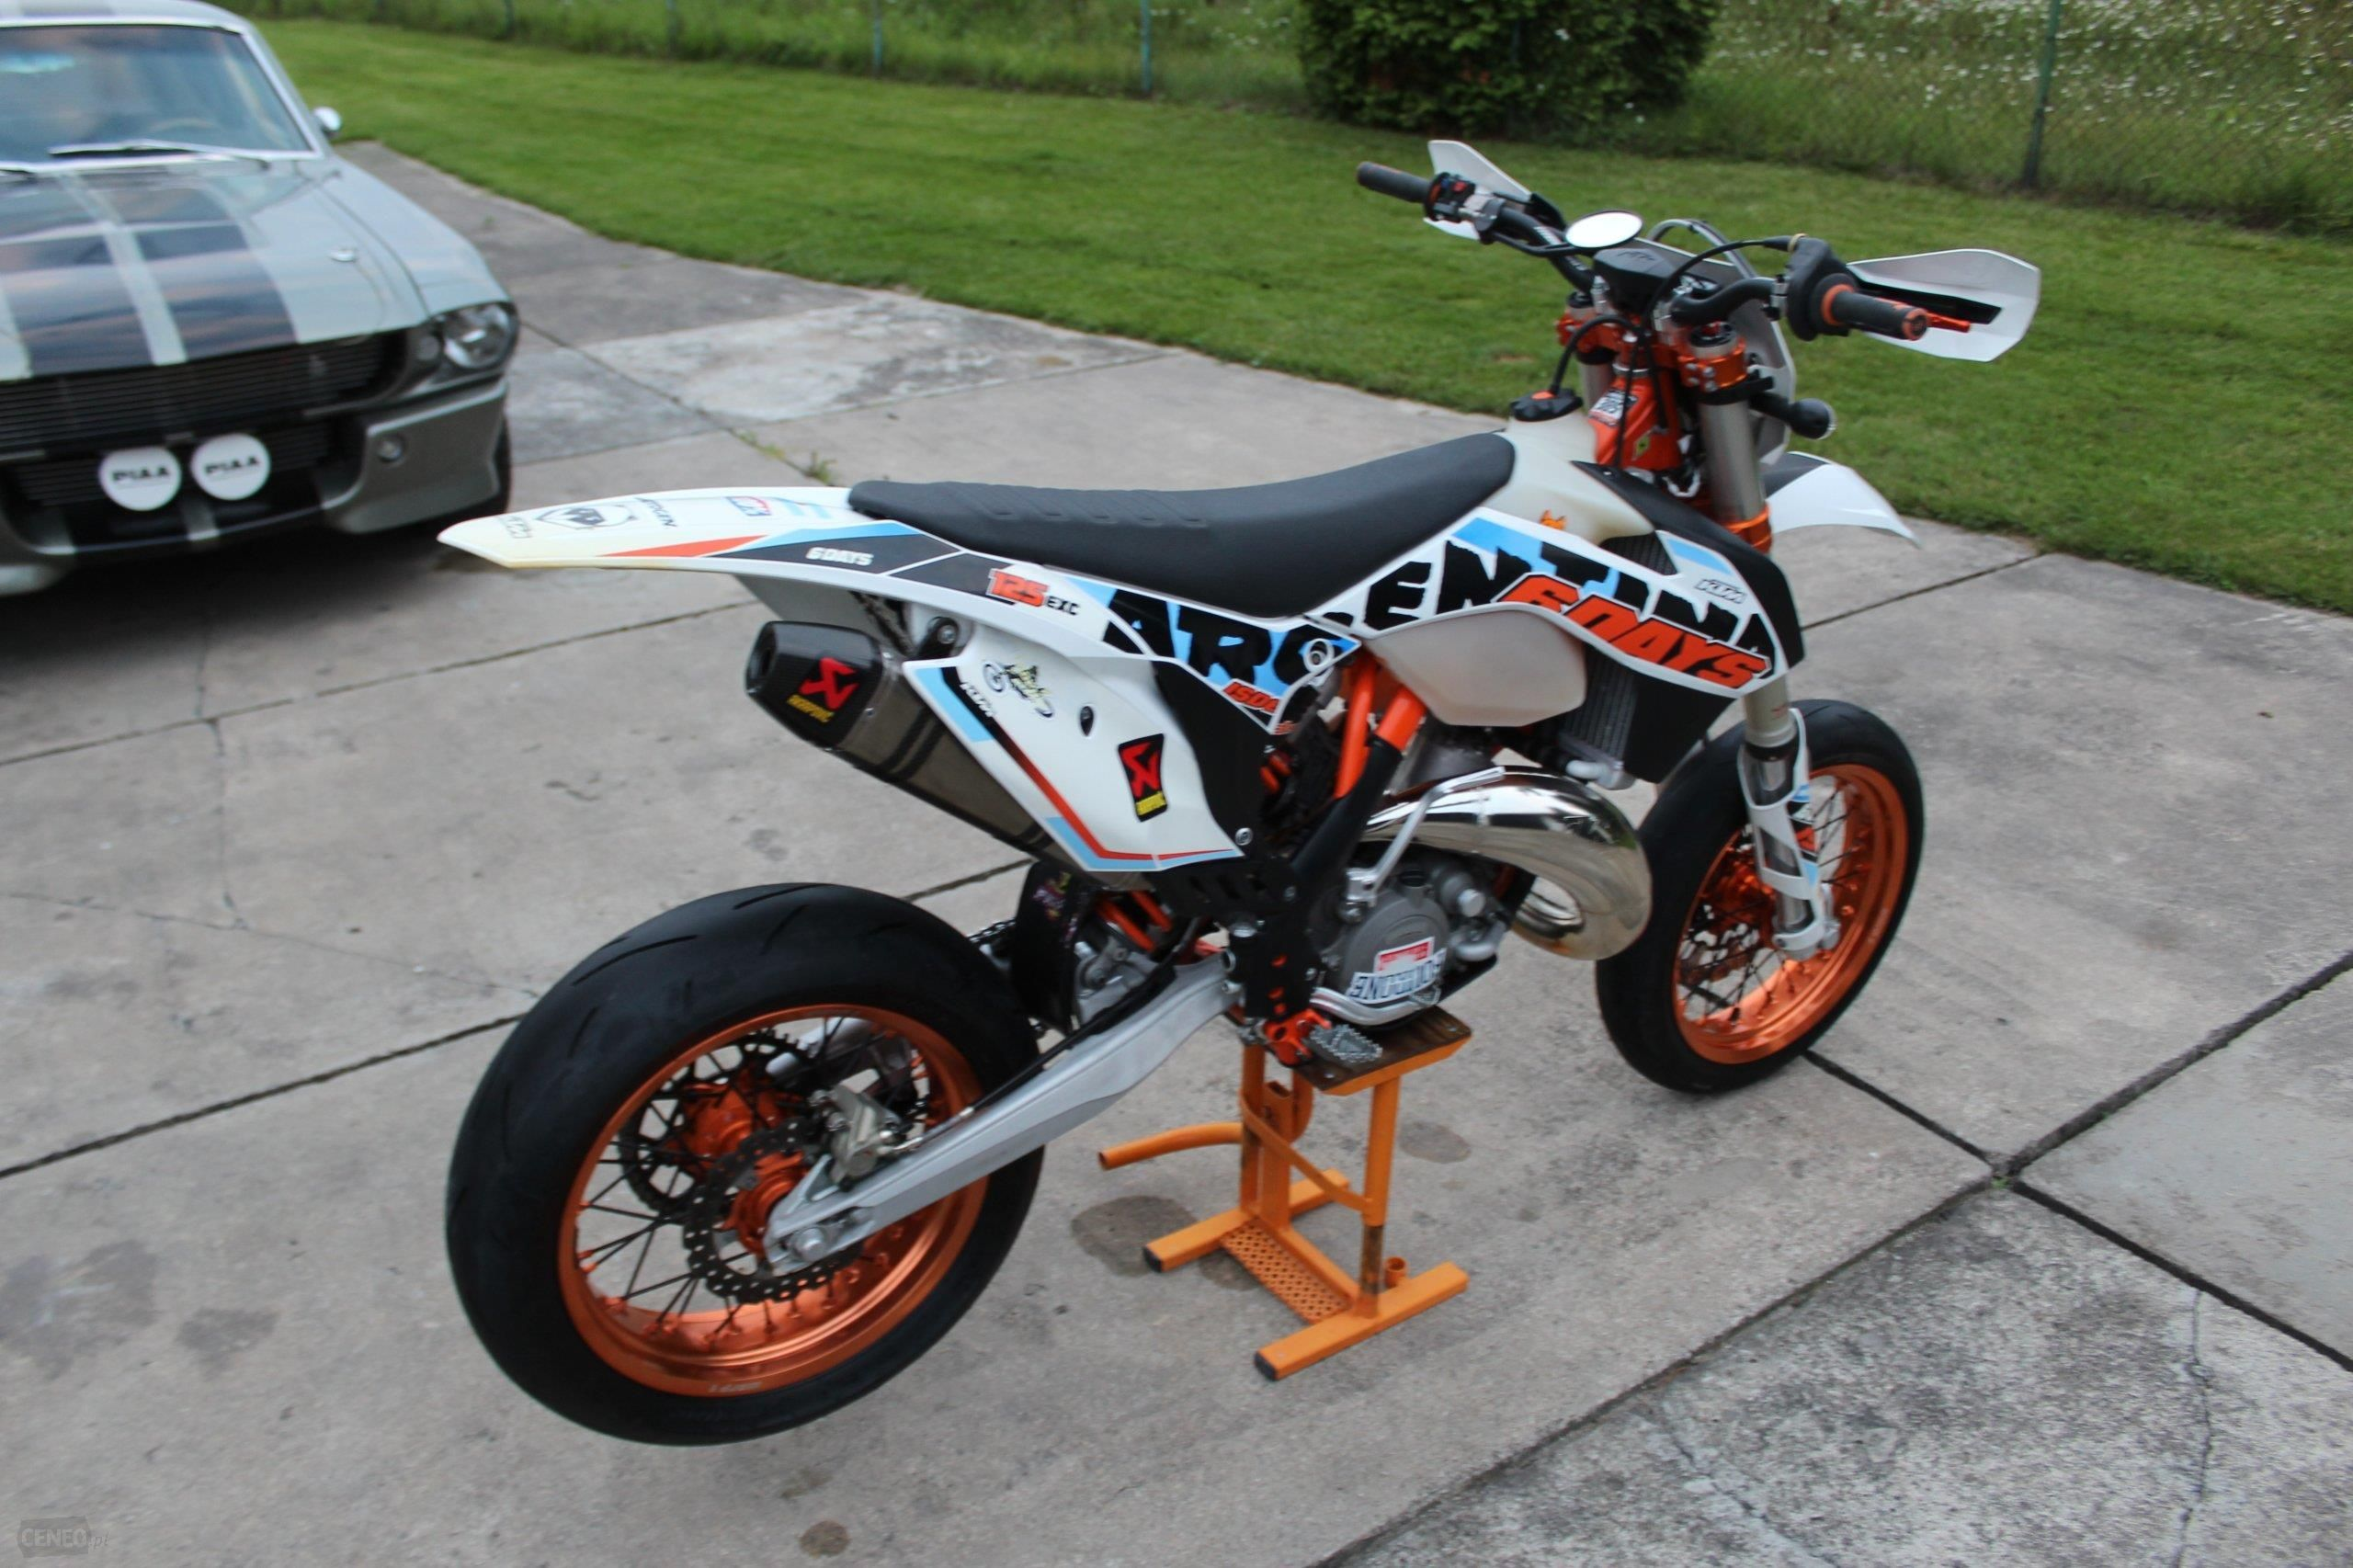 ktm exc 125 six days argentina supermoto opinie i ceny. Black Bedroom Furniture Sets. Home Design Ideas